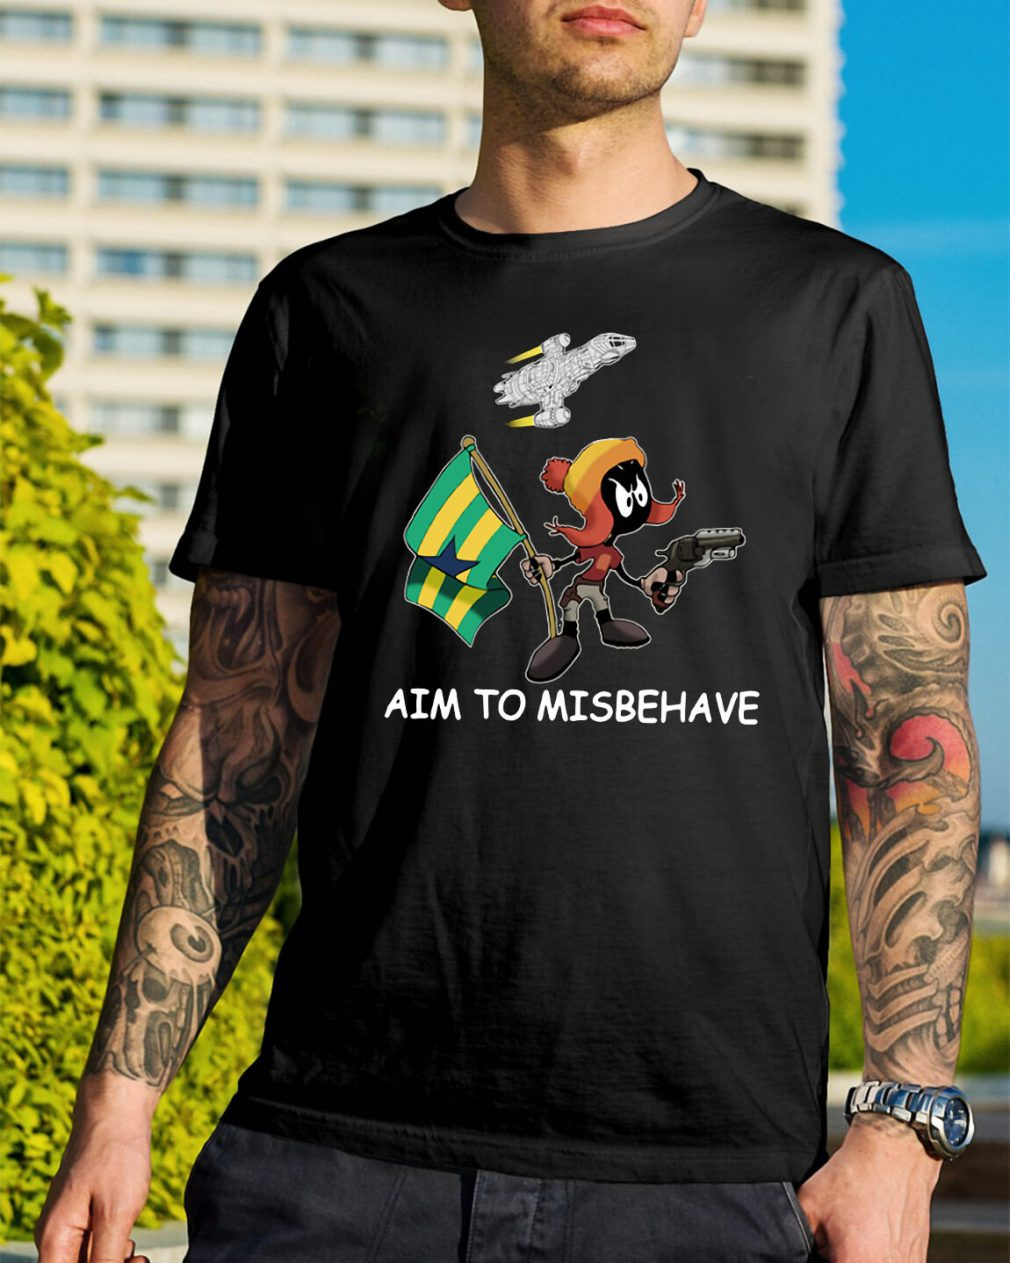 Marvin aim to misbehave shirt